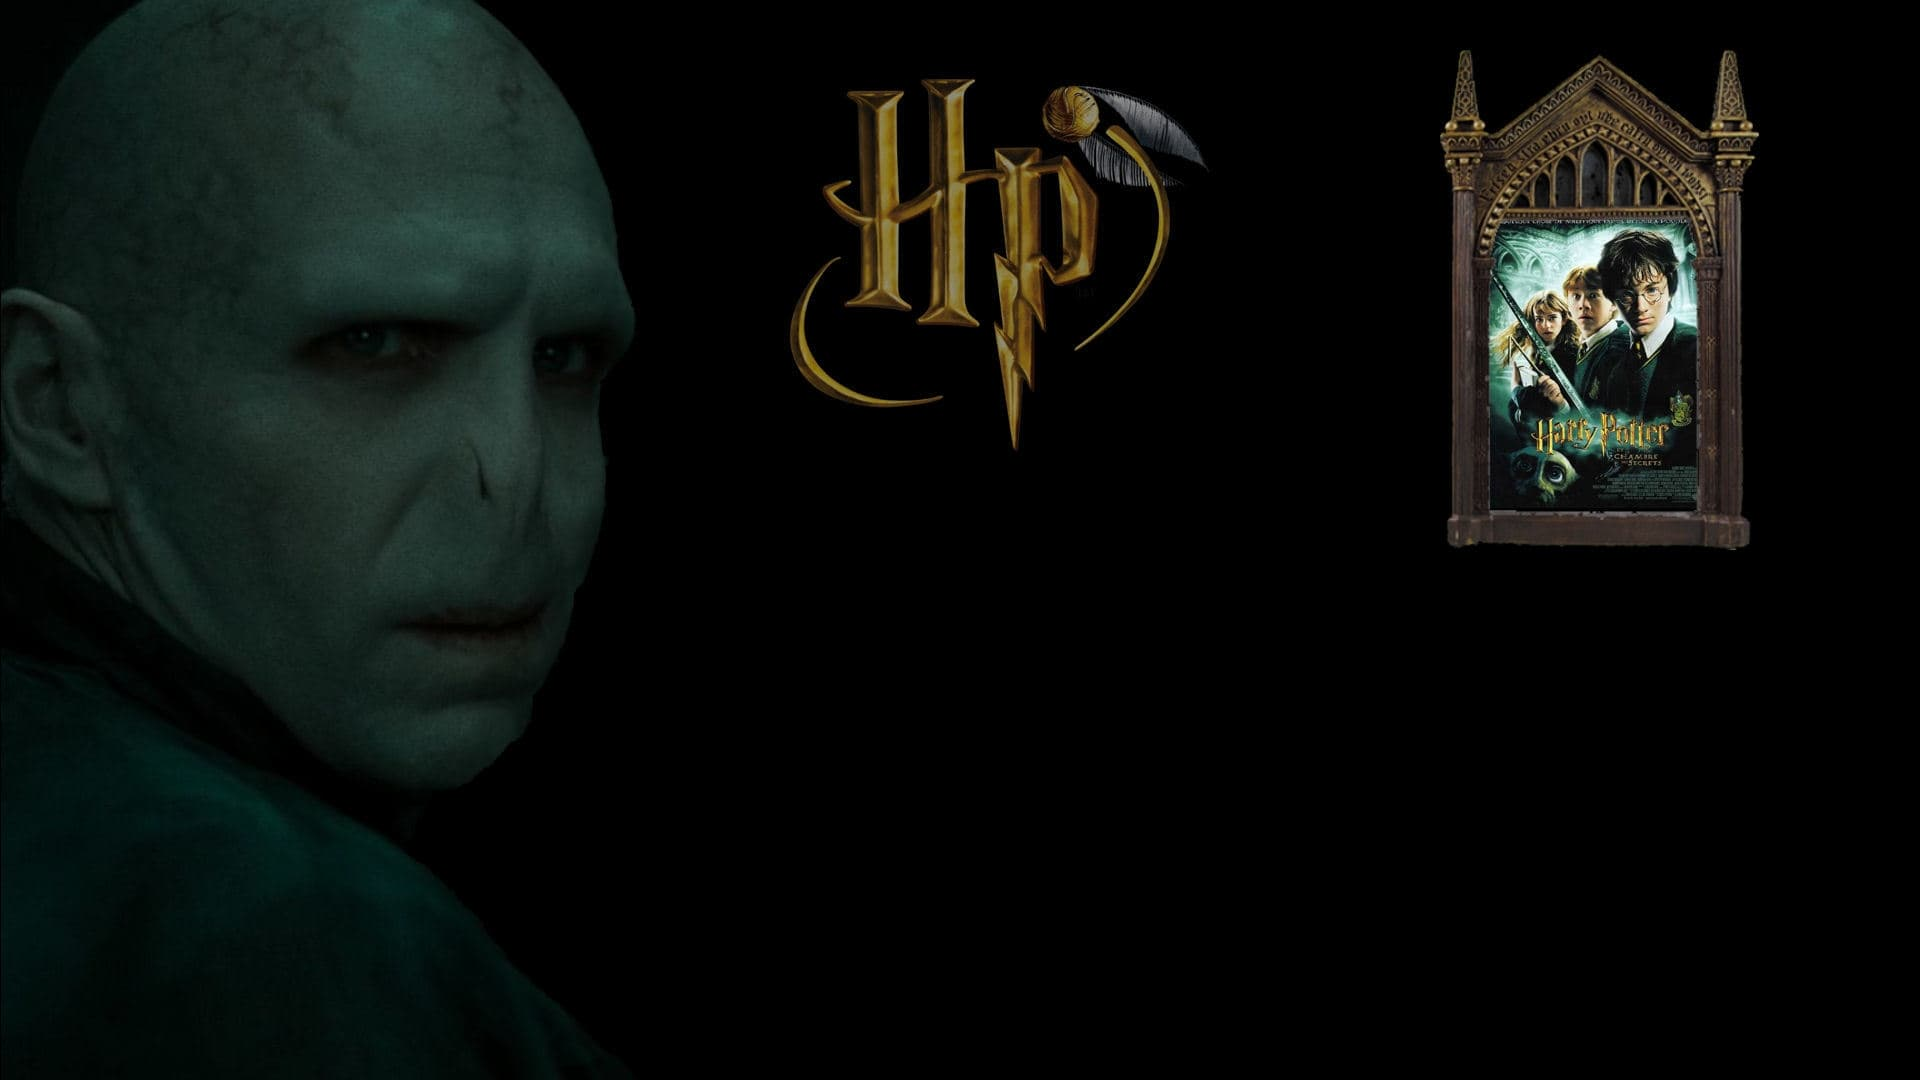 Guardare Harry Potter e la camera dei segreti Film Streaming Completo ...